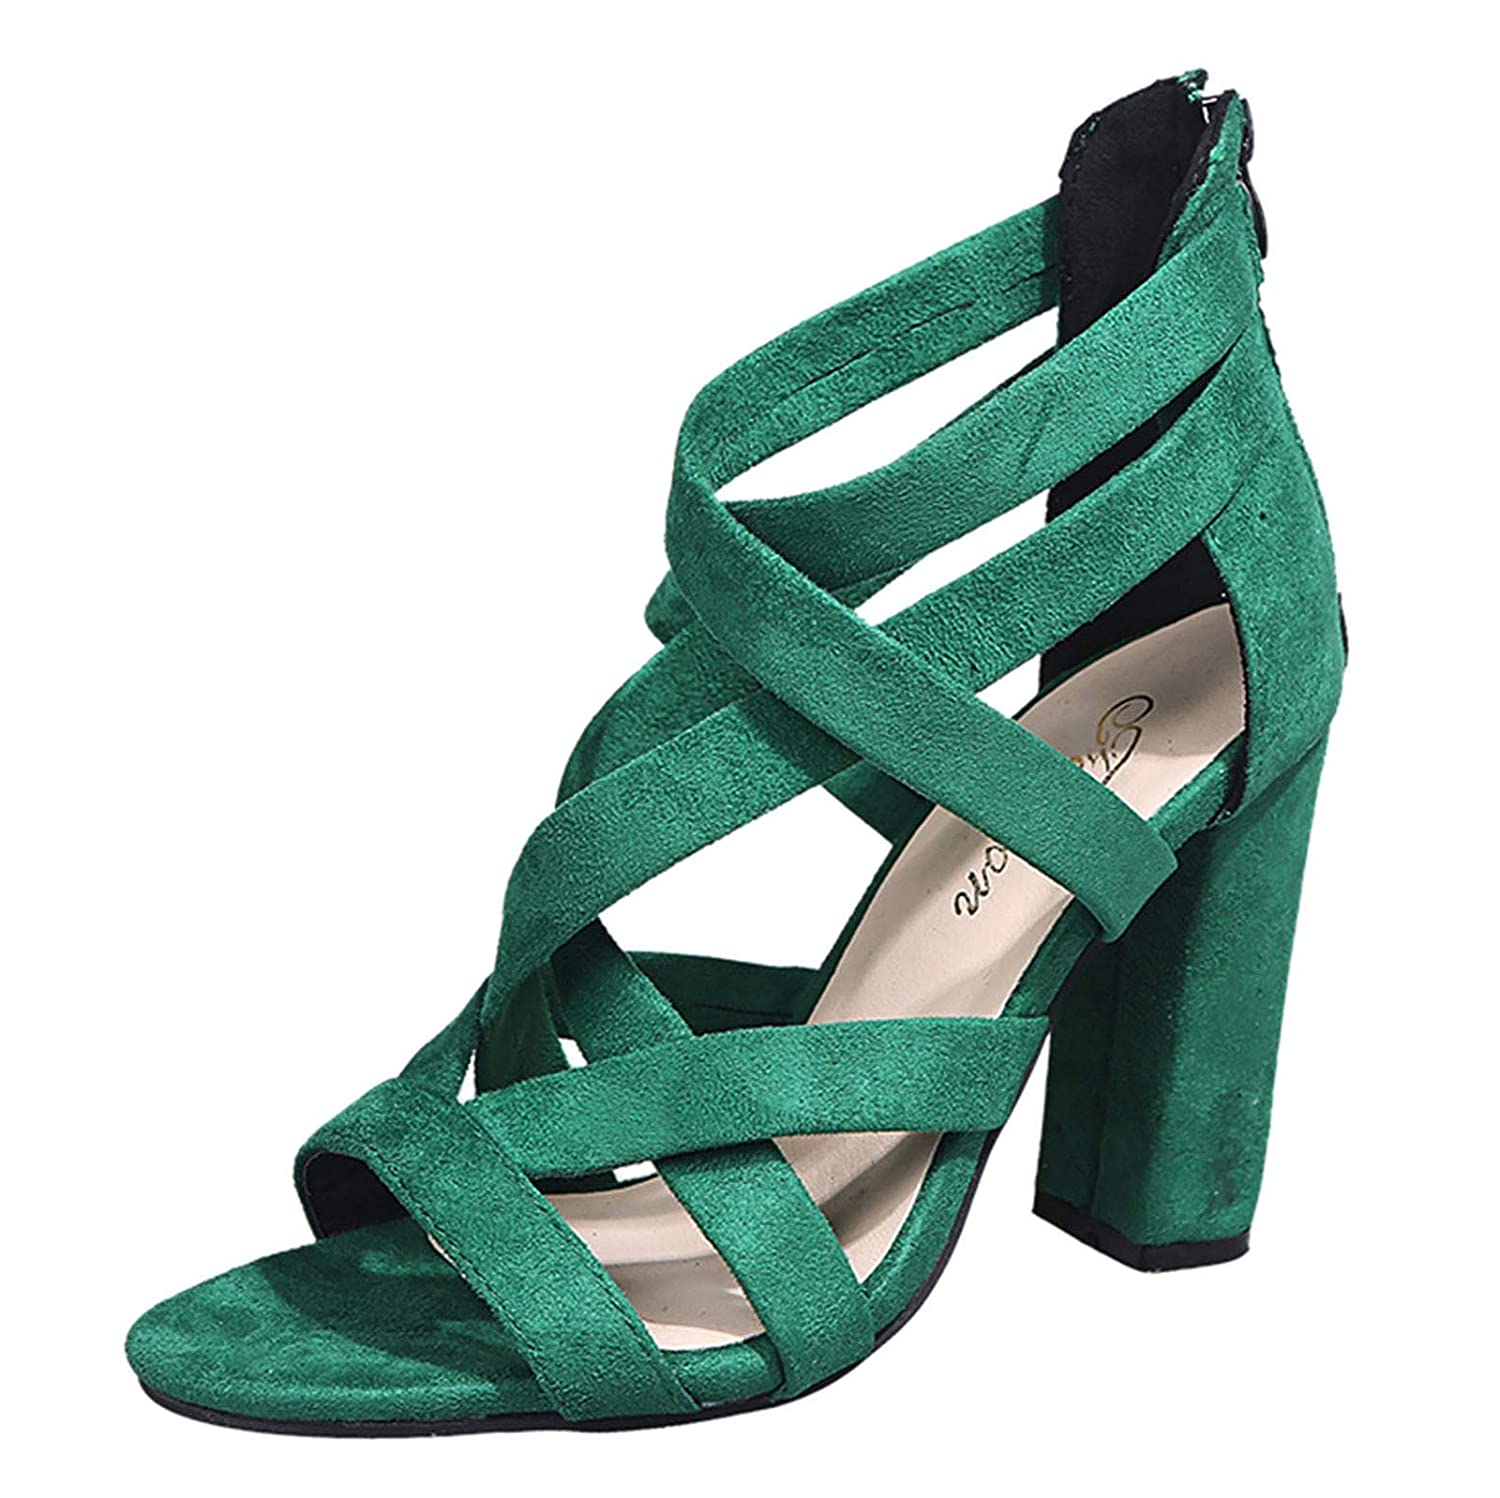 Kledbying Women's High Stiletto Open Toe Strappy Dress Pump Heel Sandals Ankle Strappy Party Evening Prom Dress Shoes